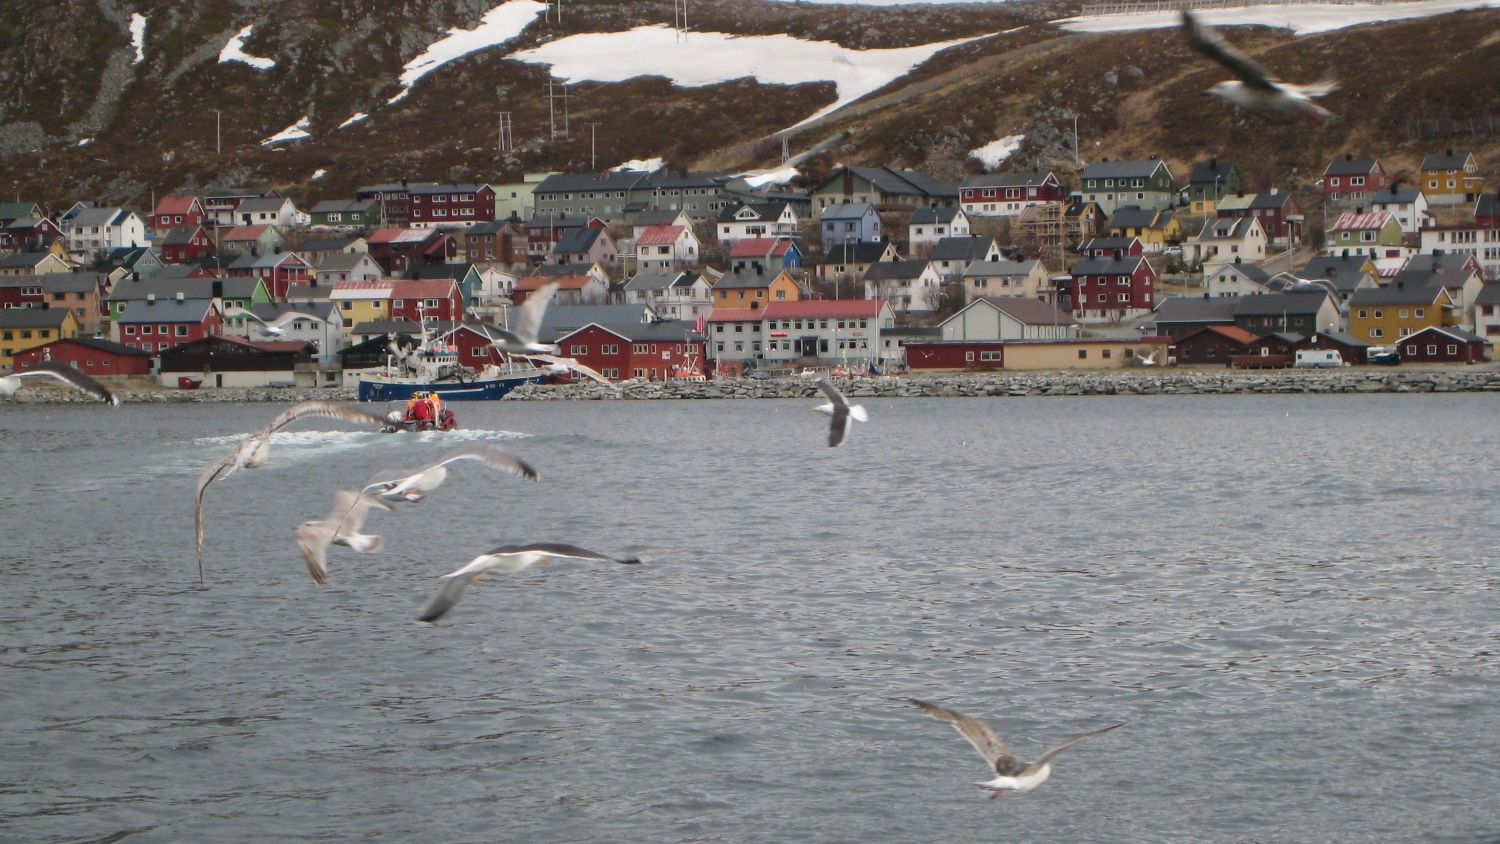 Kjøllefjord with seagulls. Photo: Nina Smedseng, nordnorge.com